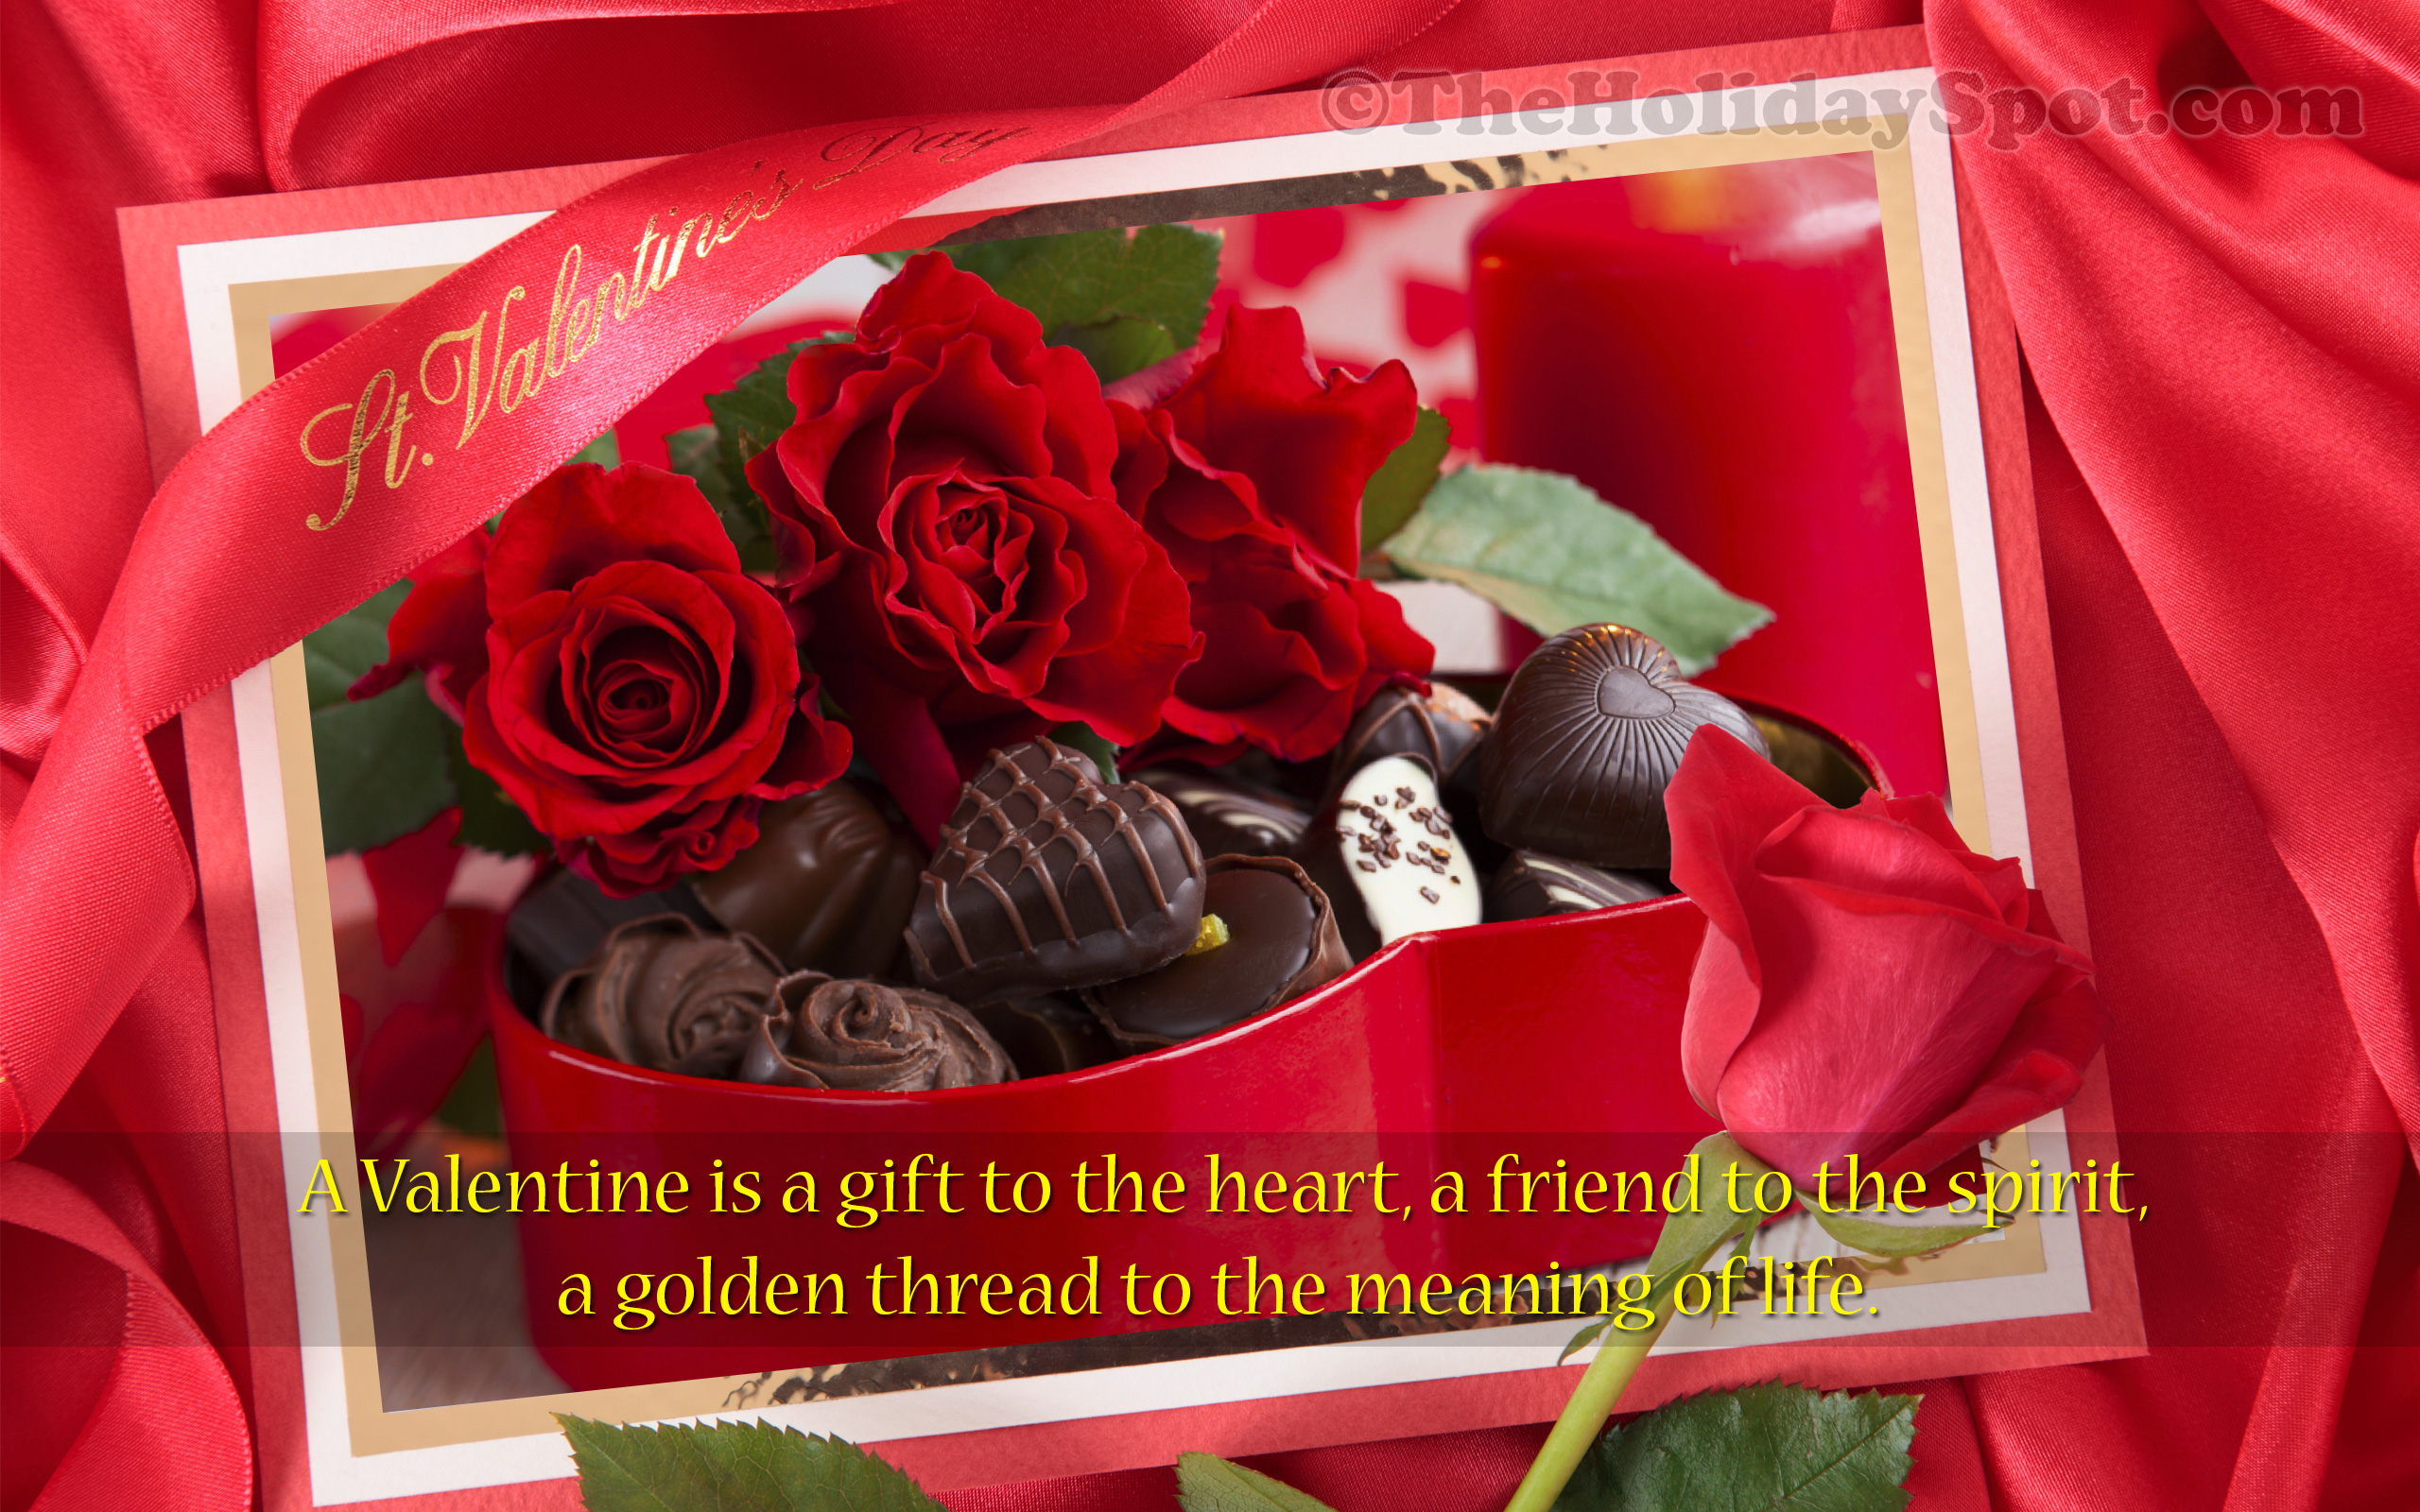 83 free valentines day wallpapers for download valentines day valentines day wallpaper with red roses and chocolates izmirmasajfo